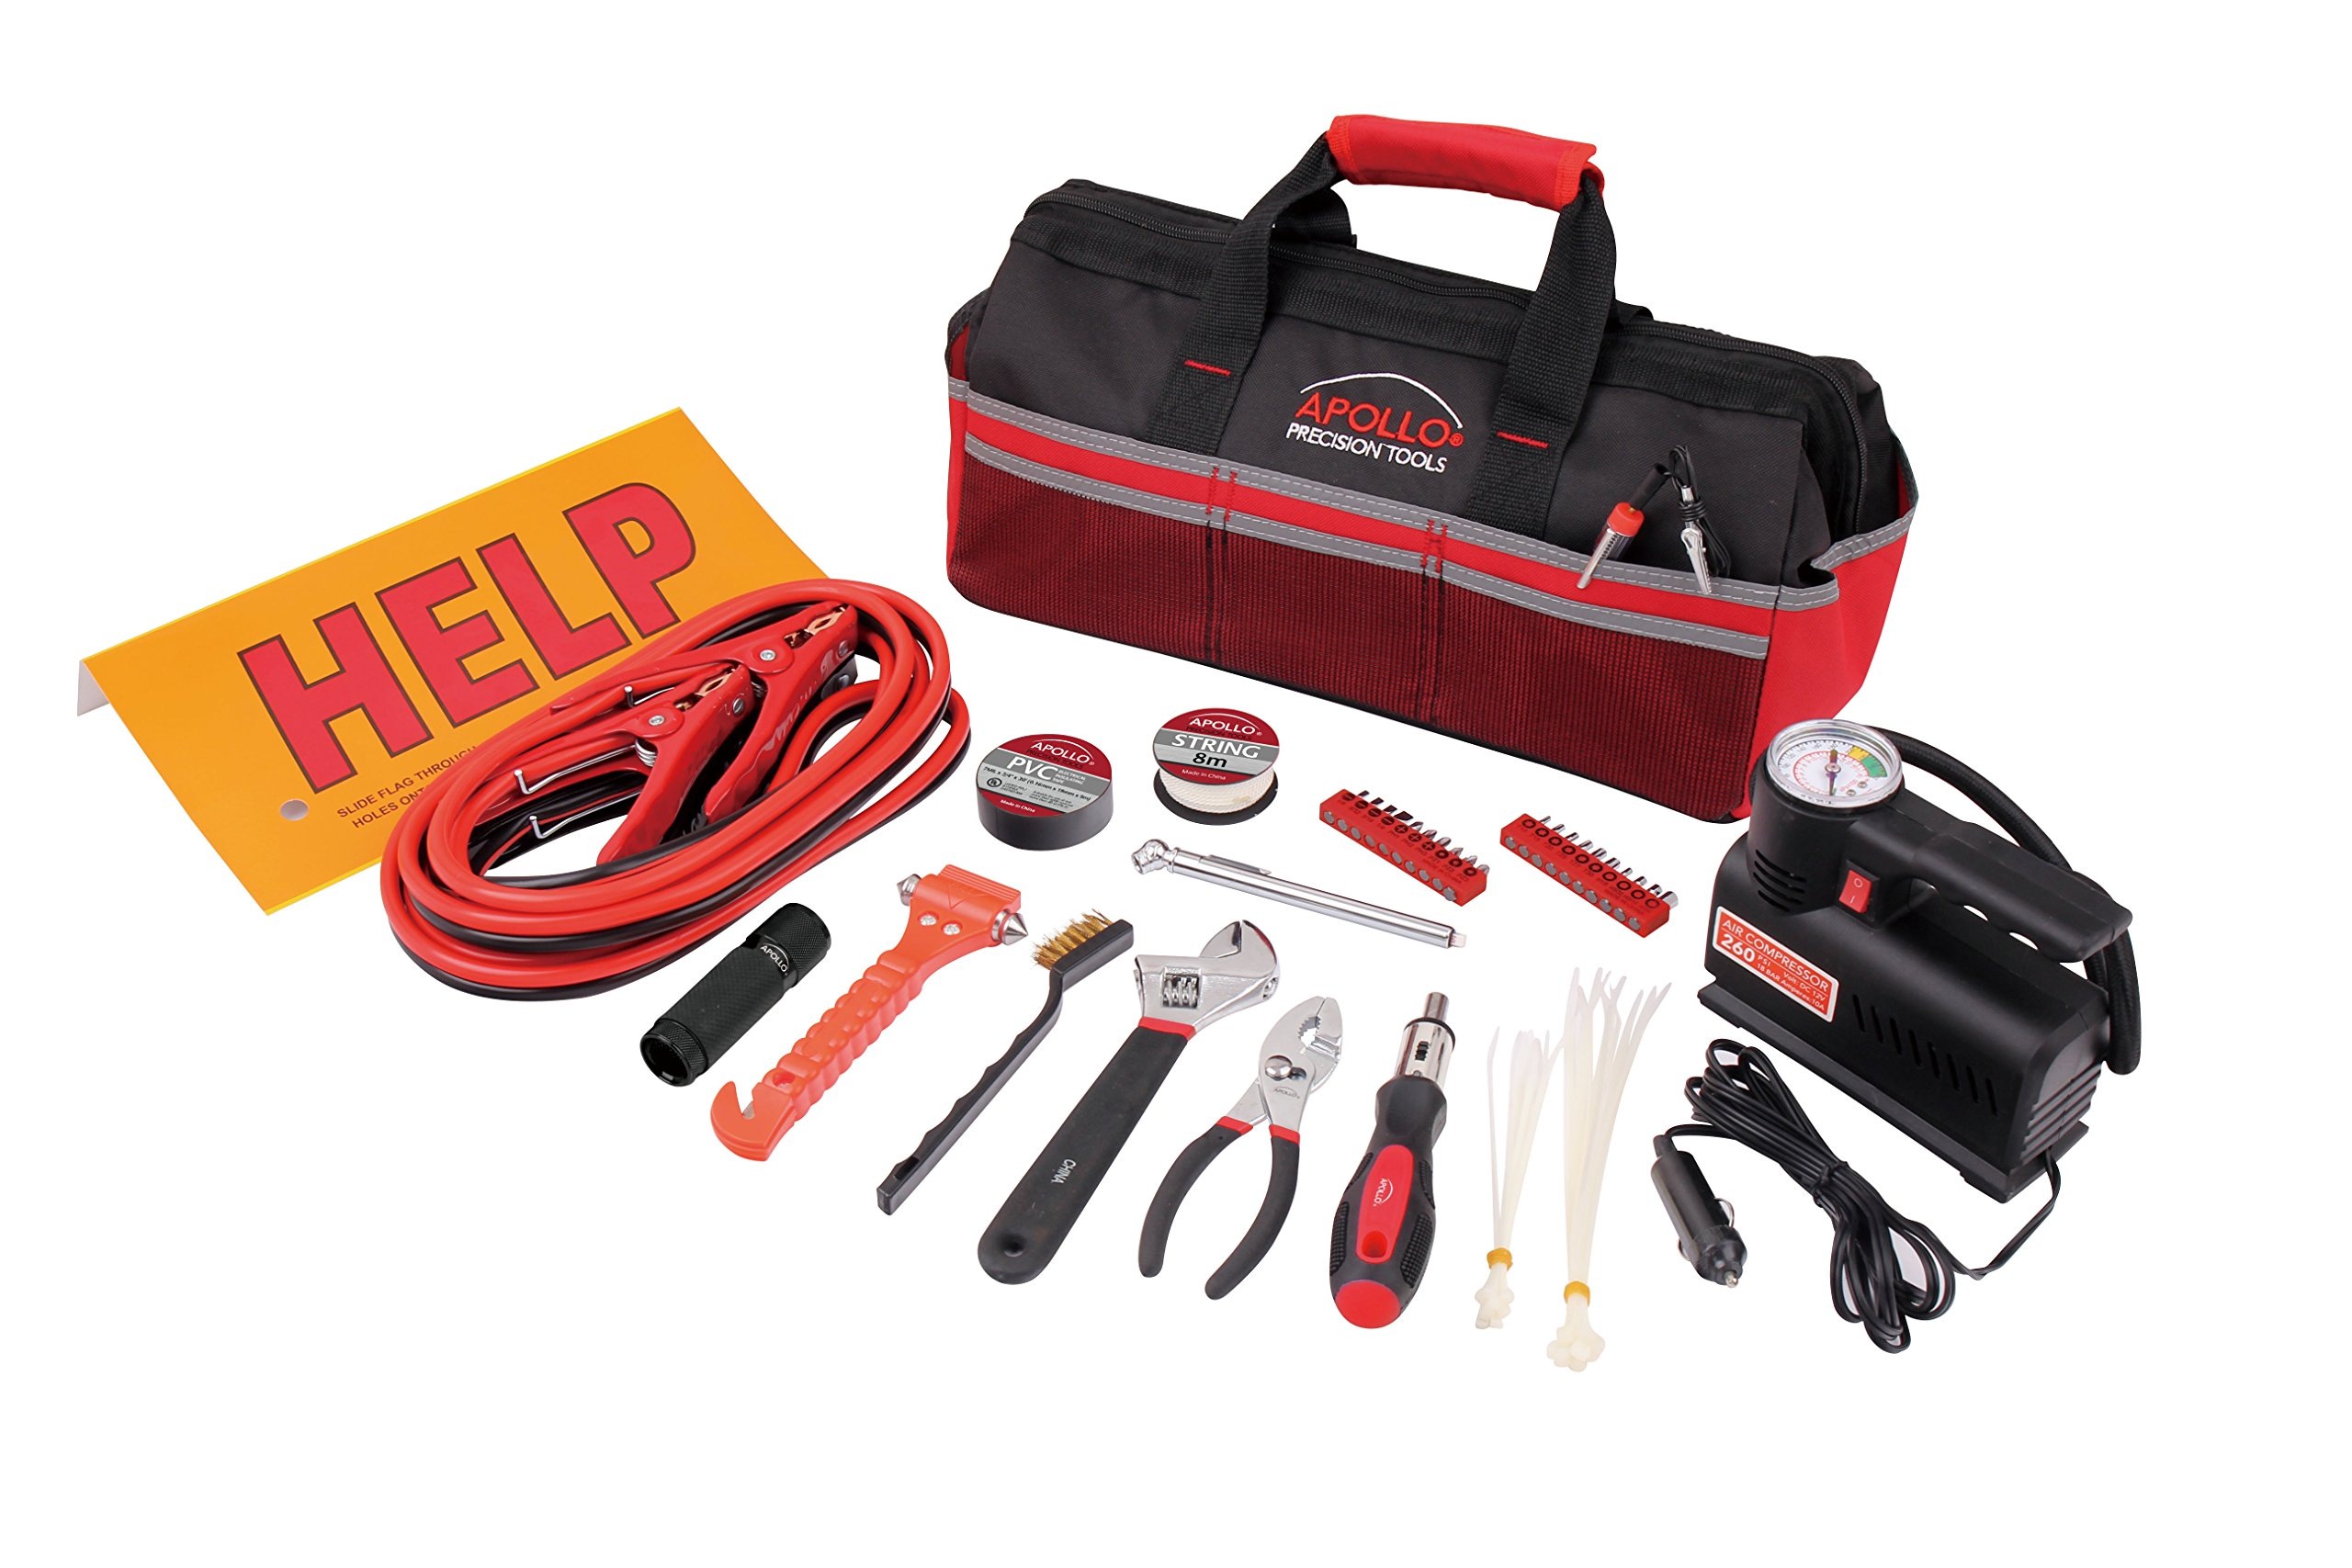 Apollo Precision Tools DT9771 Roadside Took Kit in Soft Sided Bag, Includes Air Compressor, 53-Piece